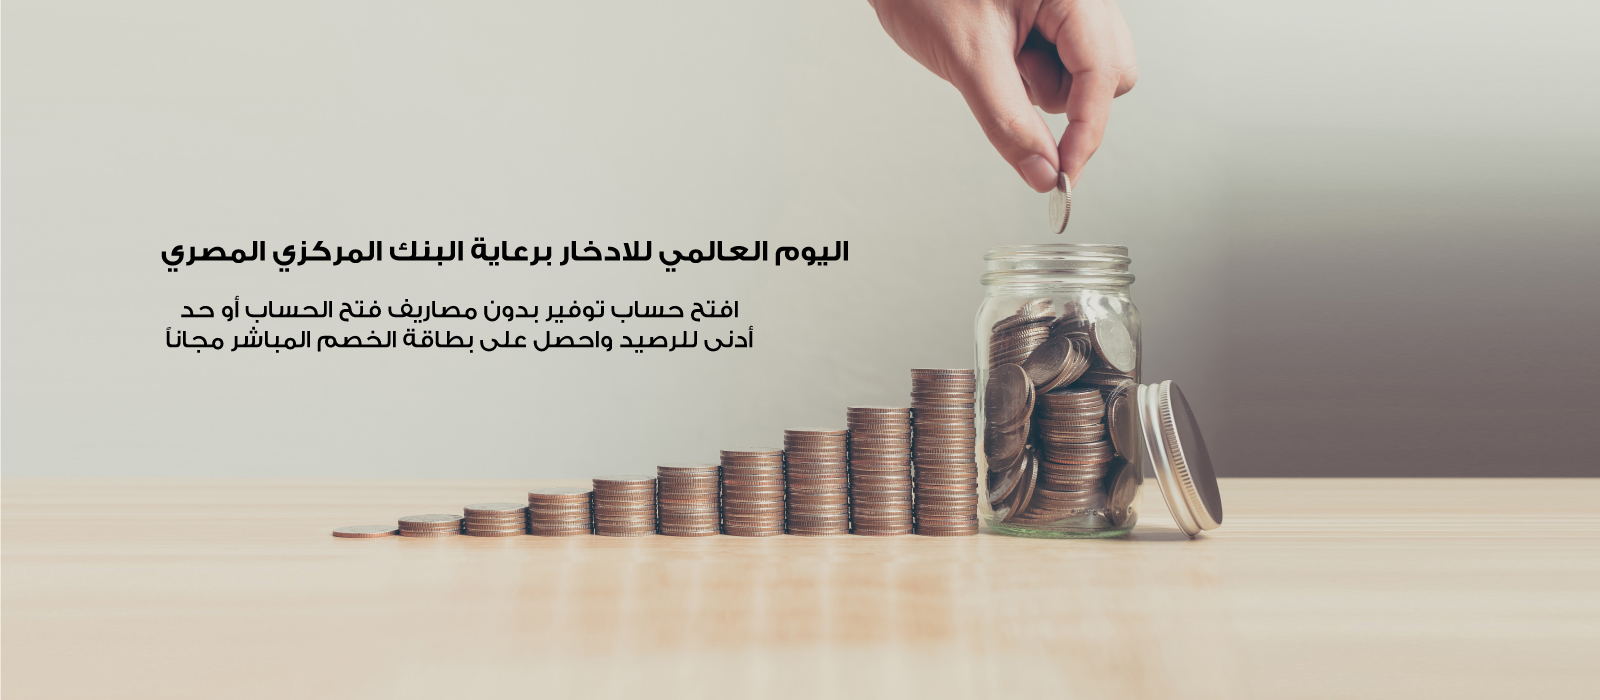 Printing-financial-inclusions--Website-banner-2-AR